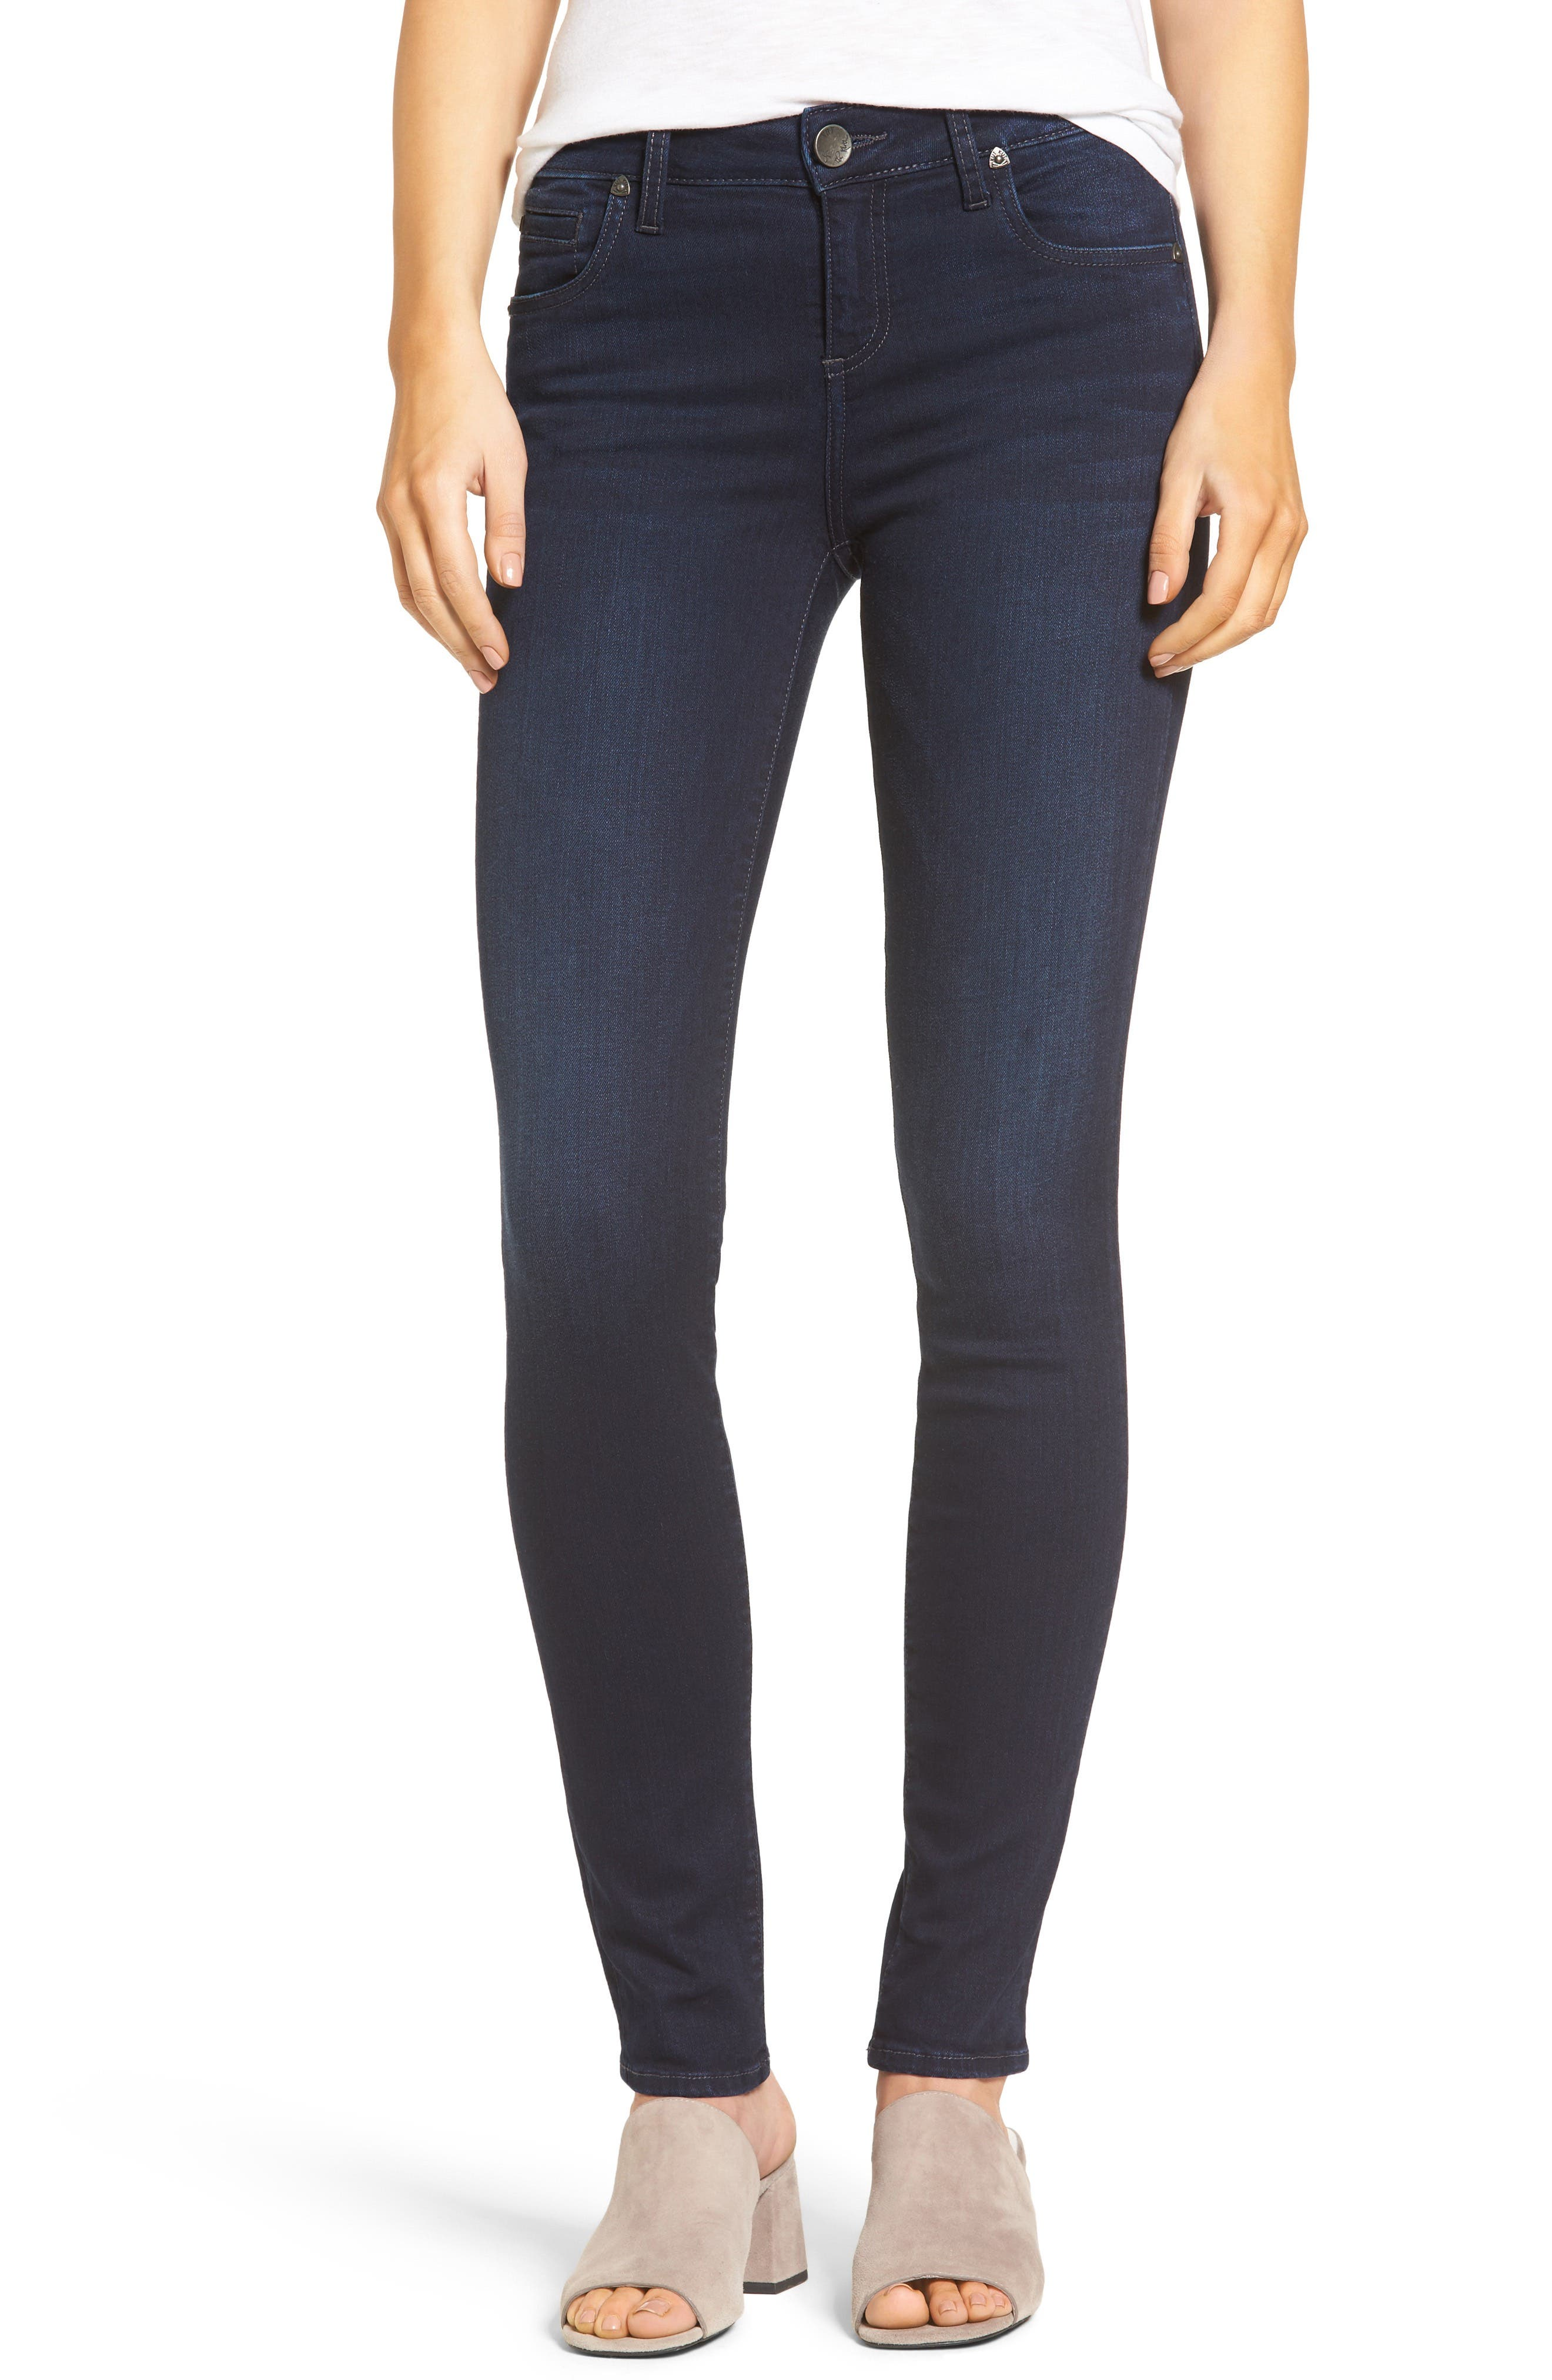 Diana Stretch Skinny Jeans,                             Main thumbnail 1, color,                             490